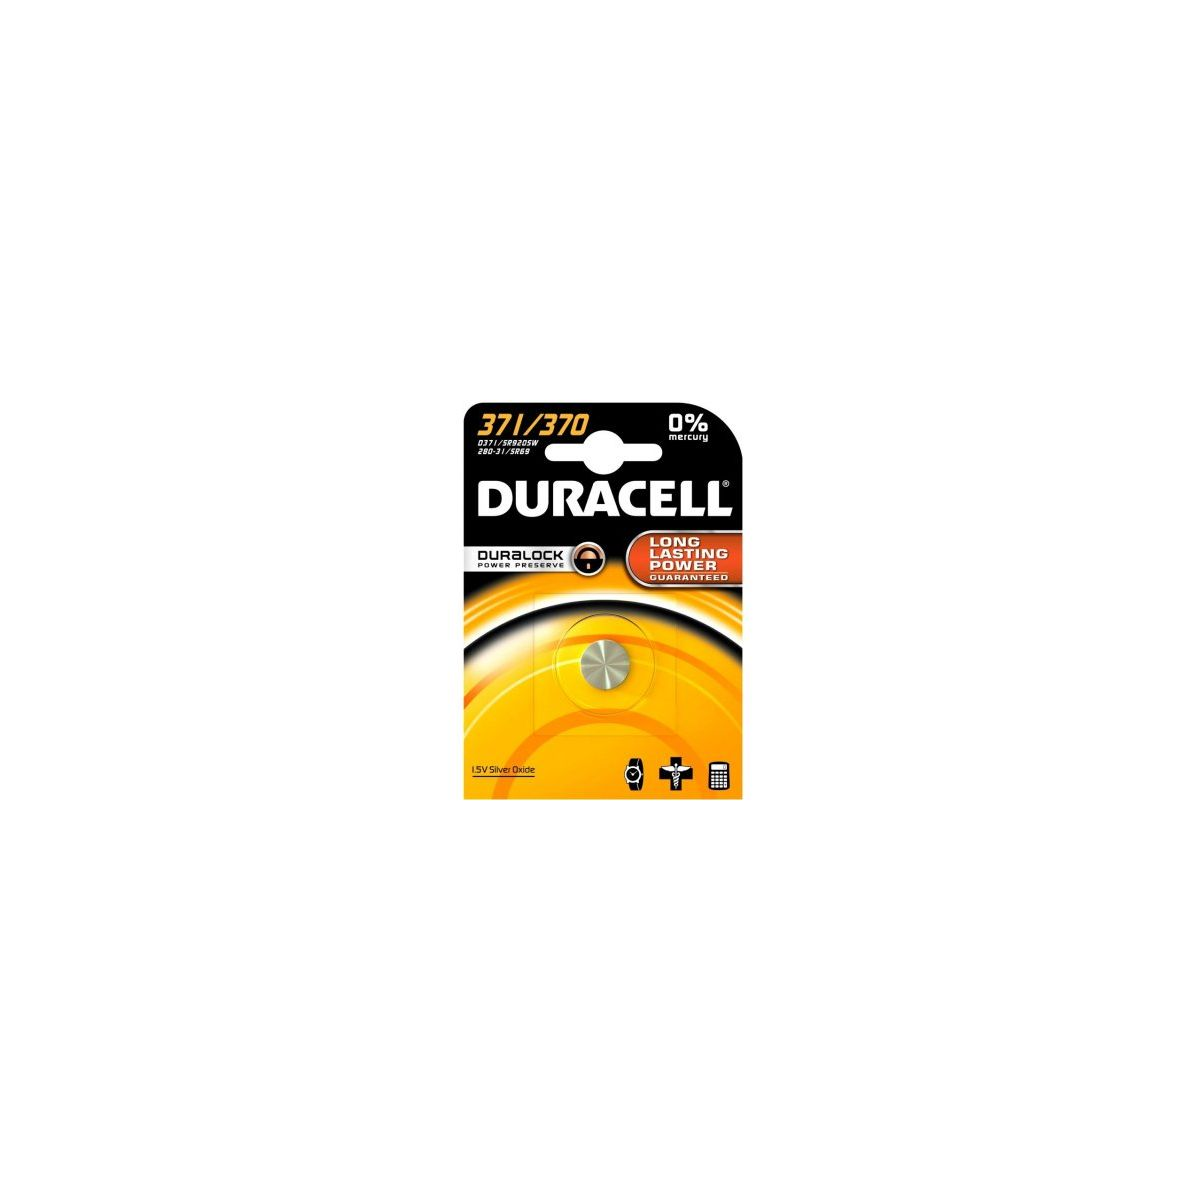 Pile DURACELL 371/370 (photo)